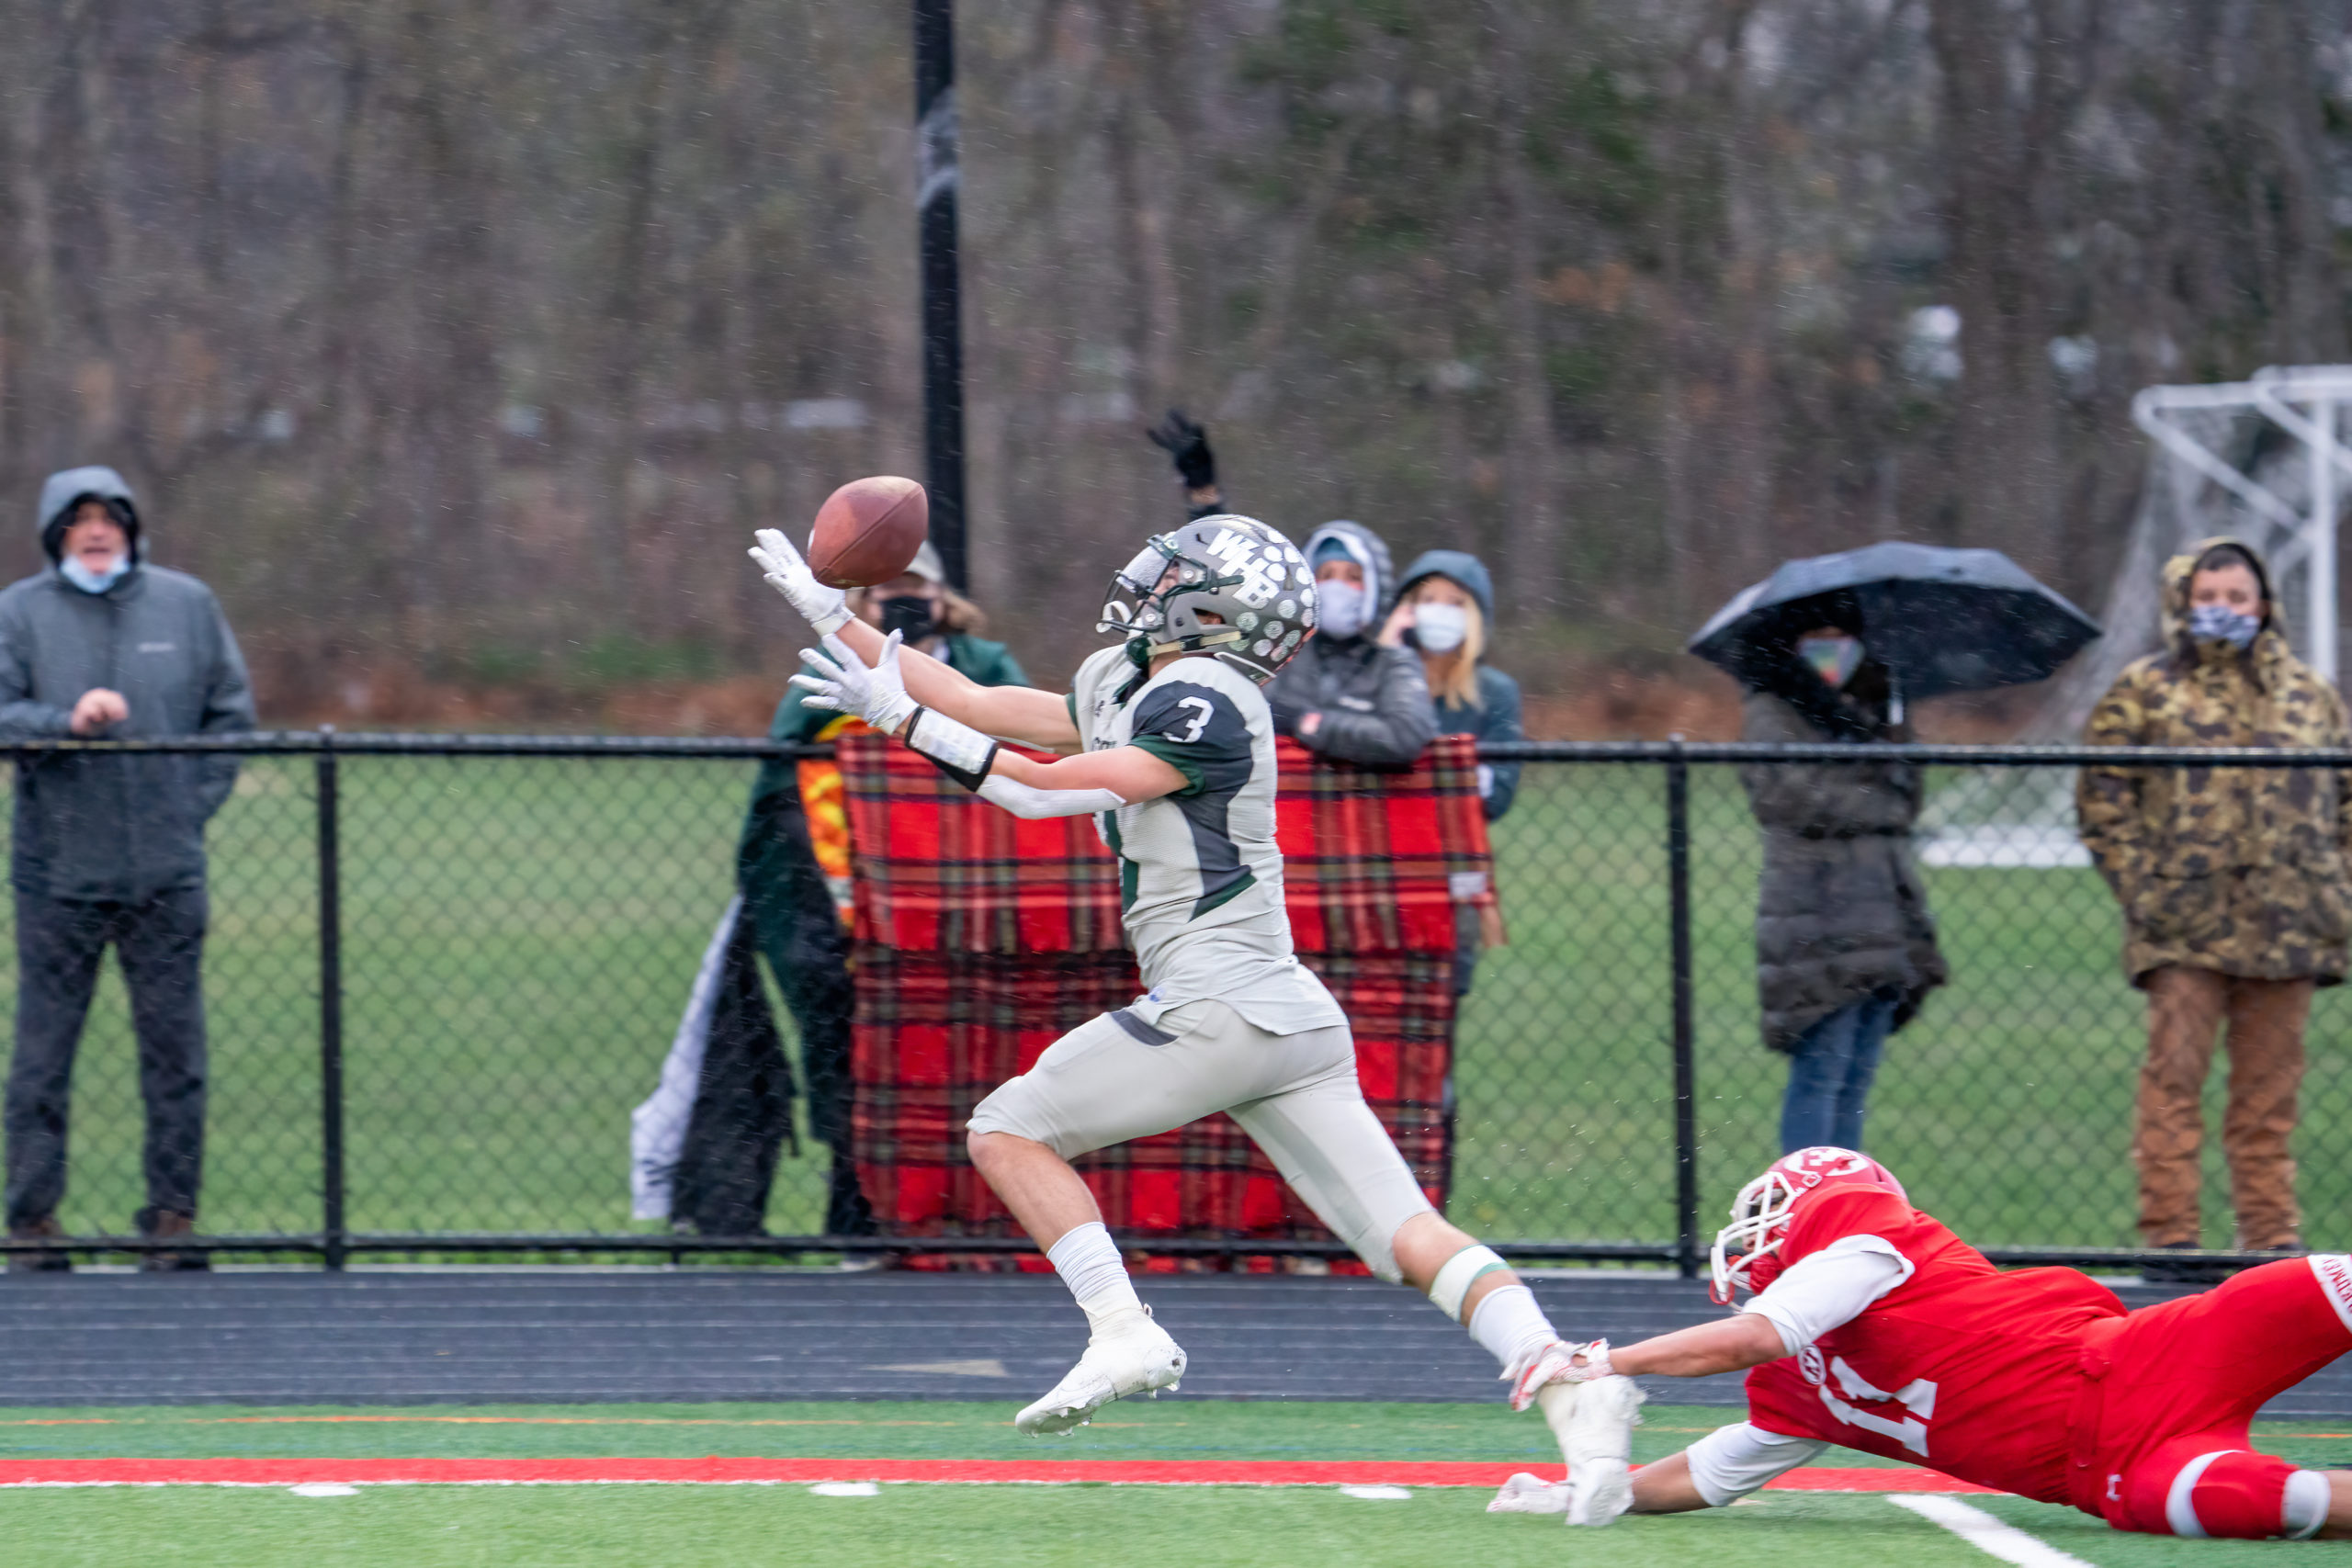 Owen Spizuoco catches a deep pass from quarterback Christian Capuano down the sideline, eludes an East Islip defender, and scurries into the end zone to pull Westhampton Beach closer to East Islip's lead with just under a minute left in the first half.